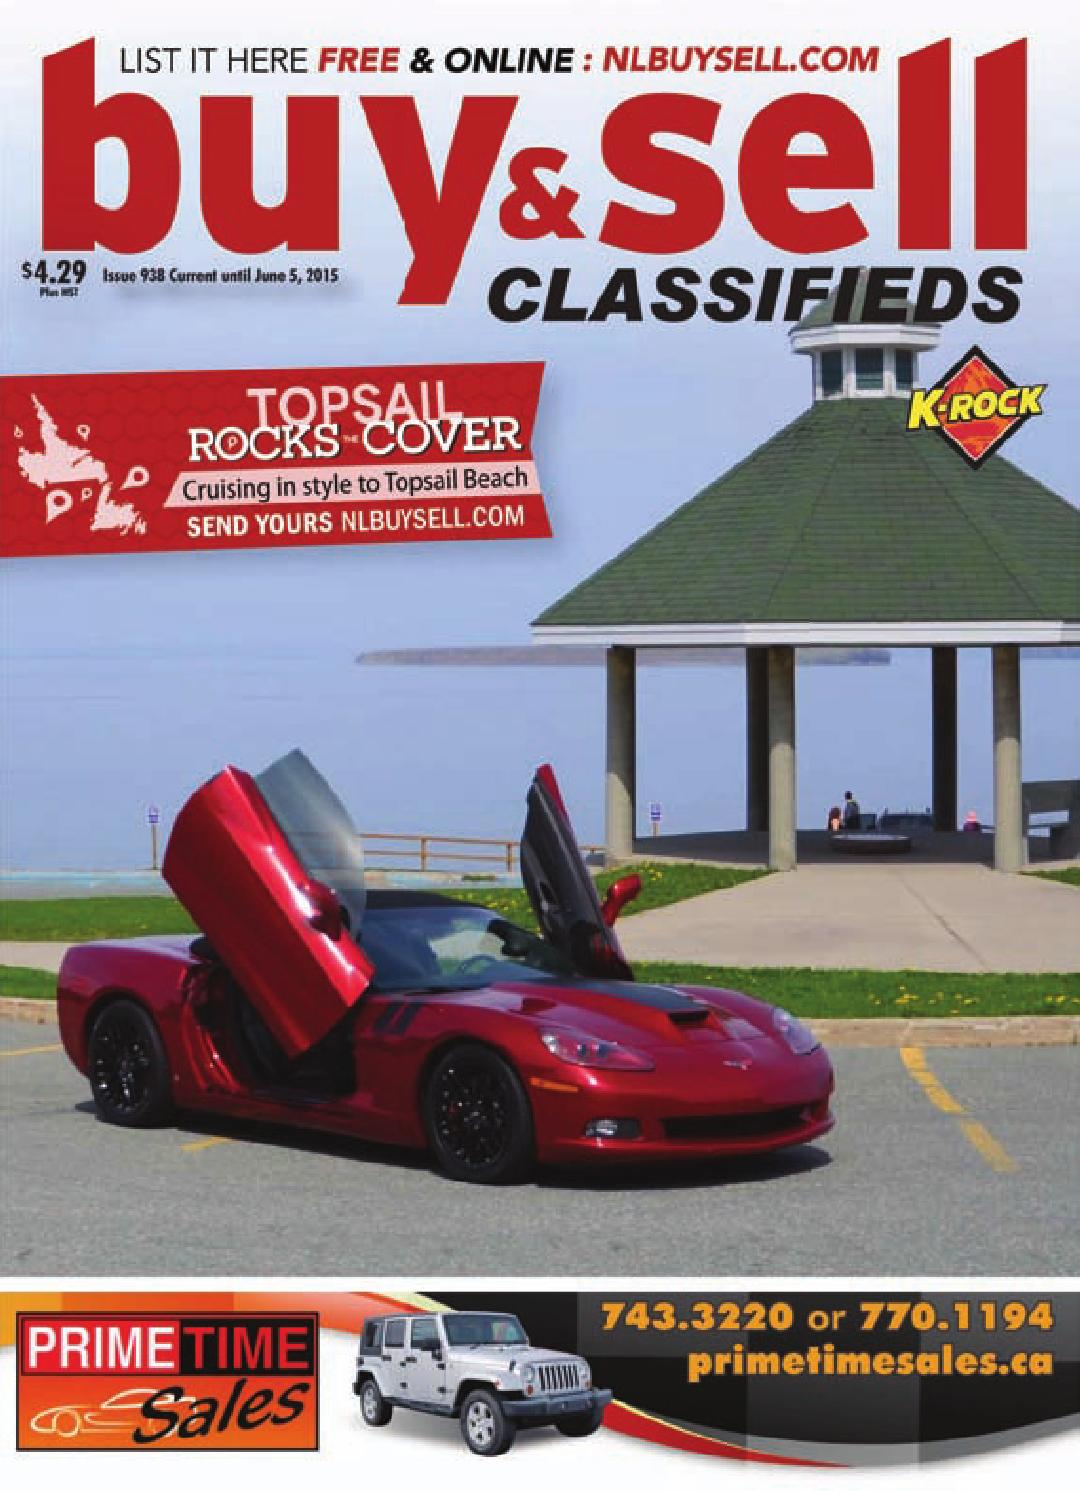 9d77ce3269e The Buy & Sell Magazine Issue 938 by NL Buy Sell - issuu